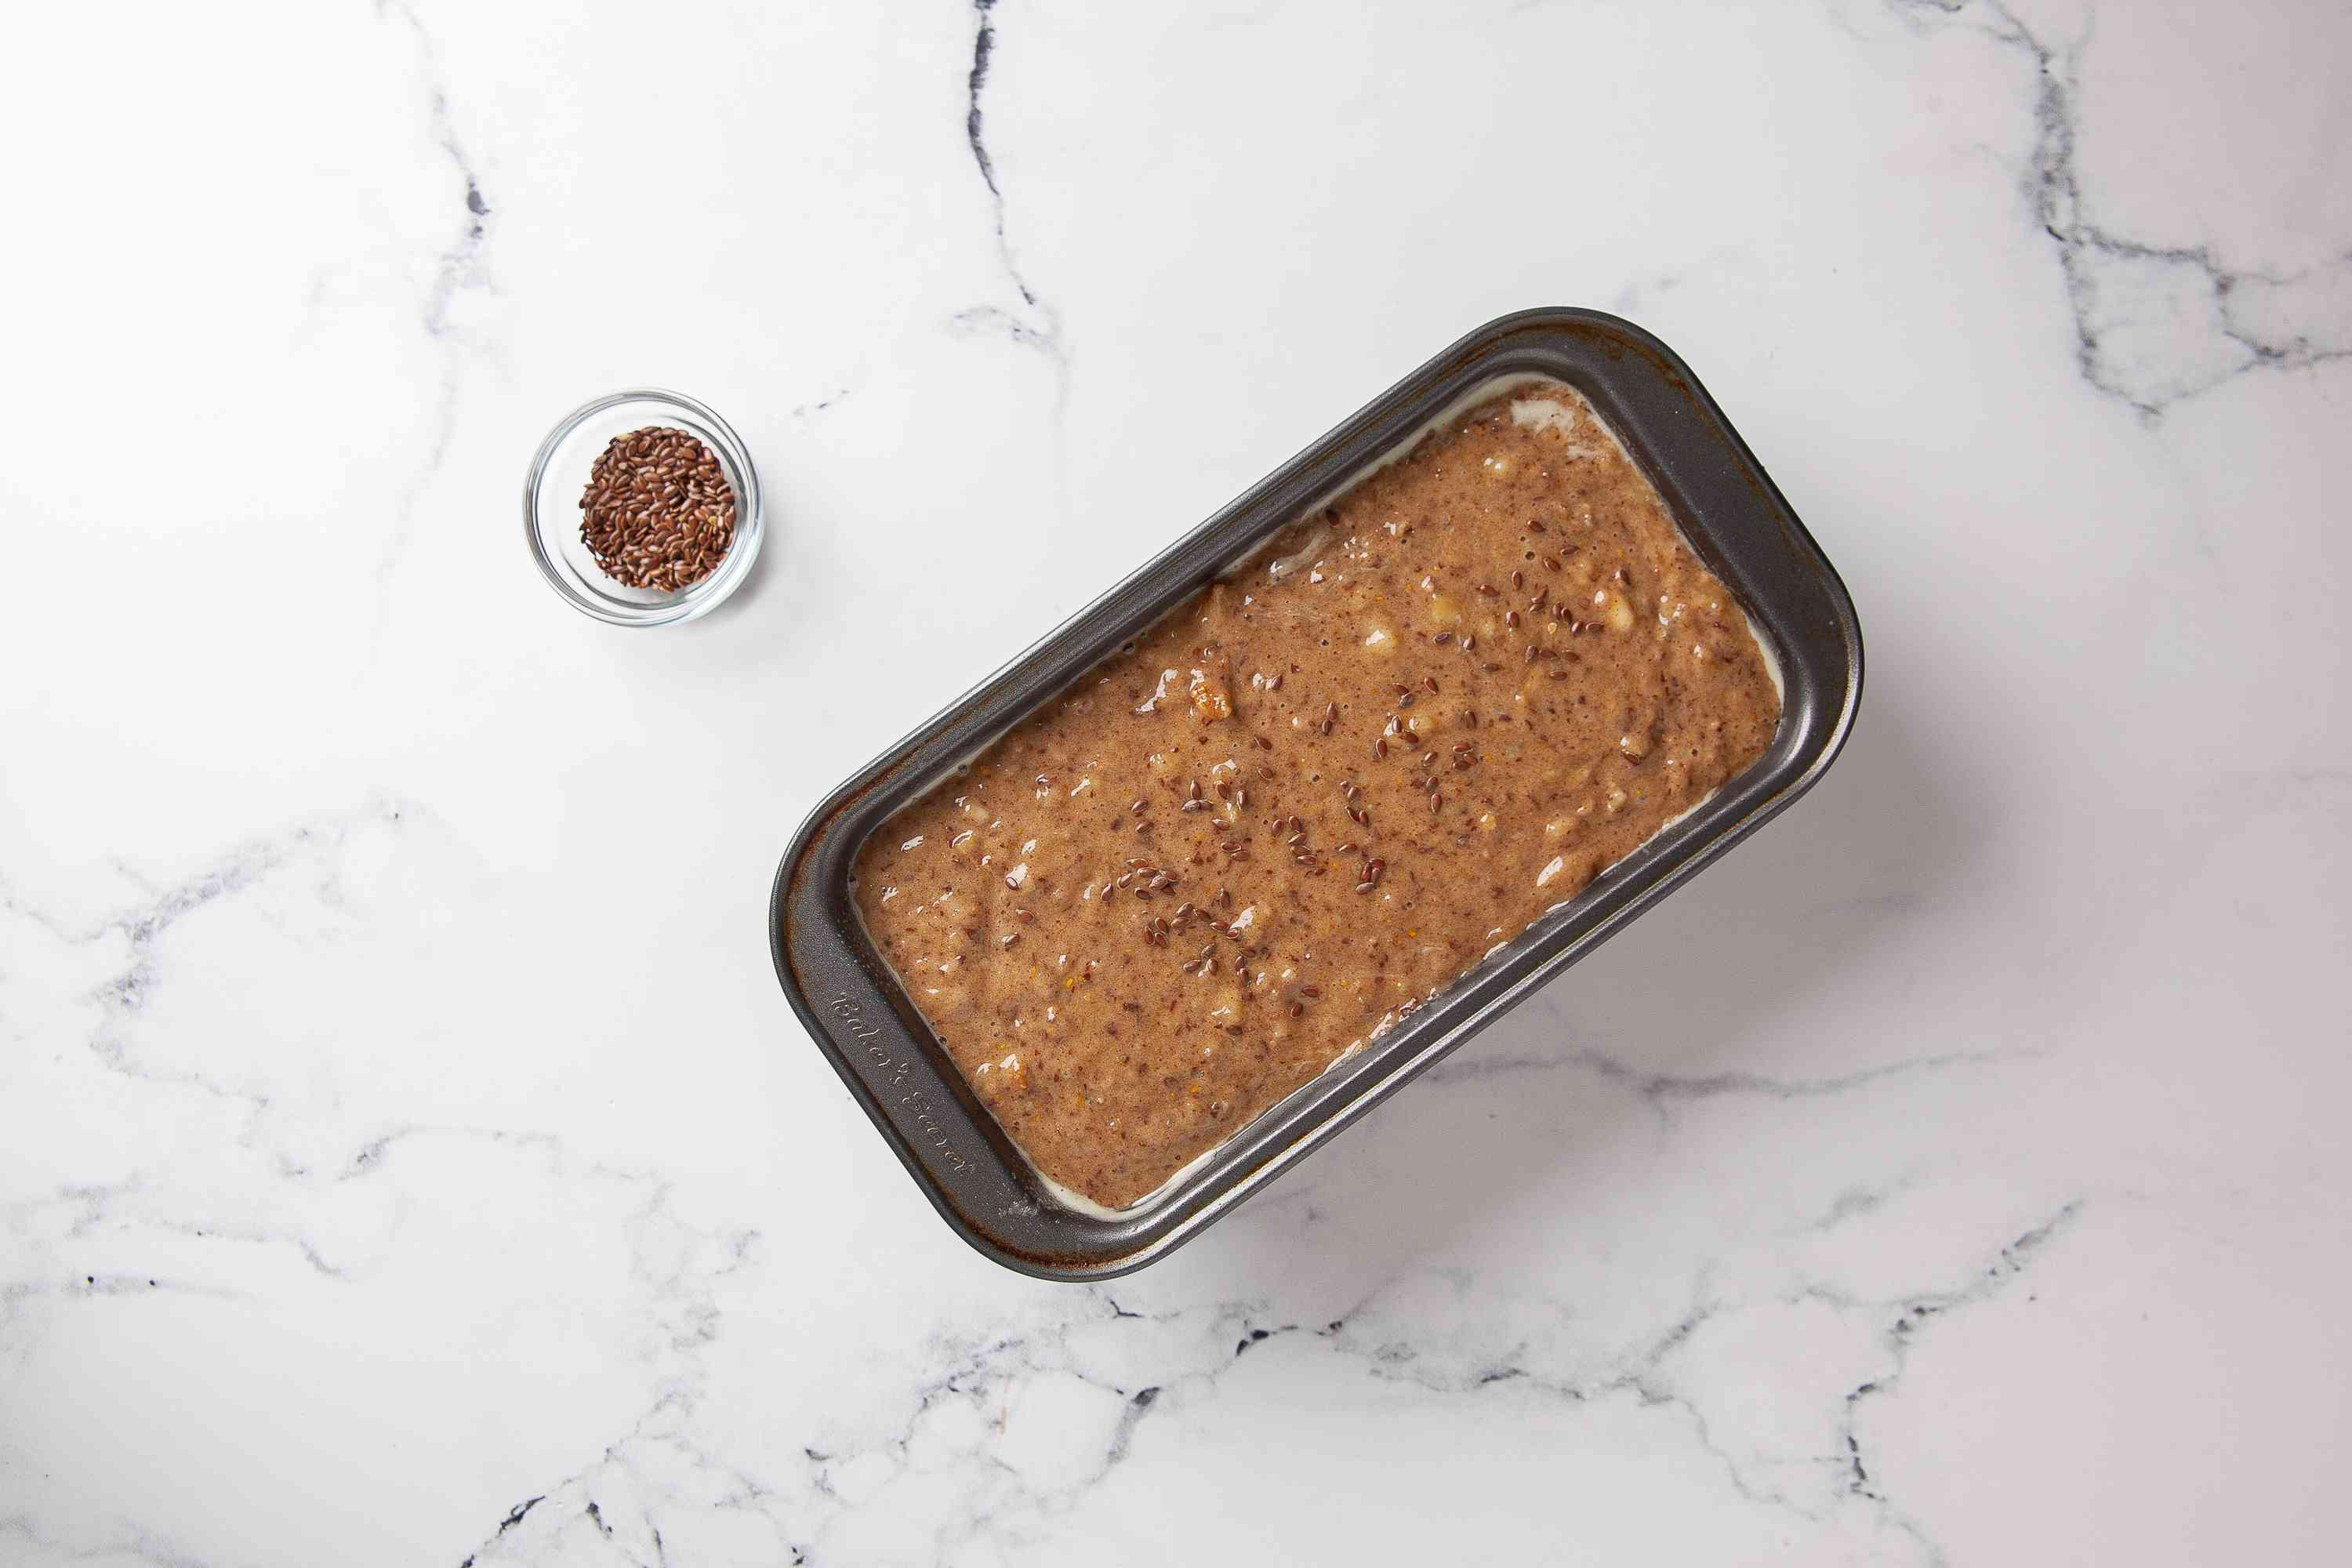 Sprinkle with flaxseeds and bake